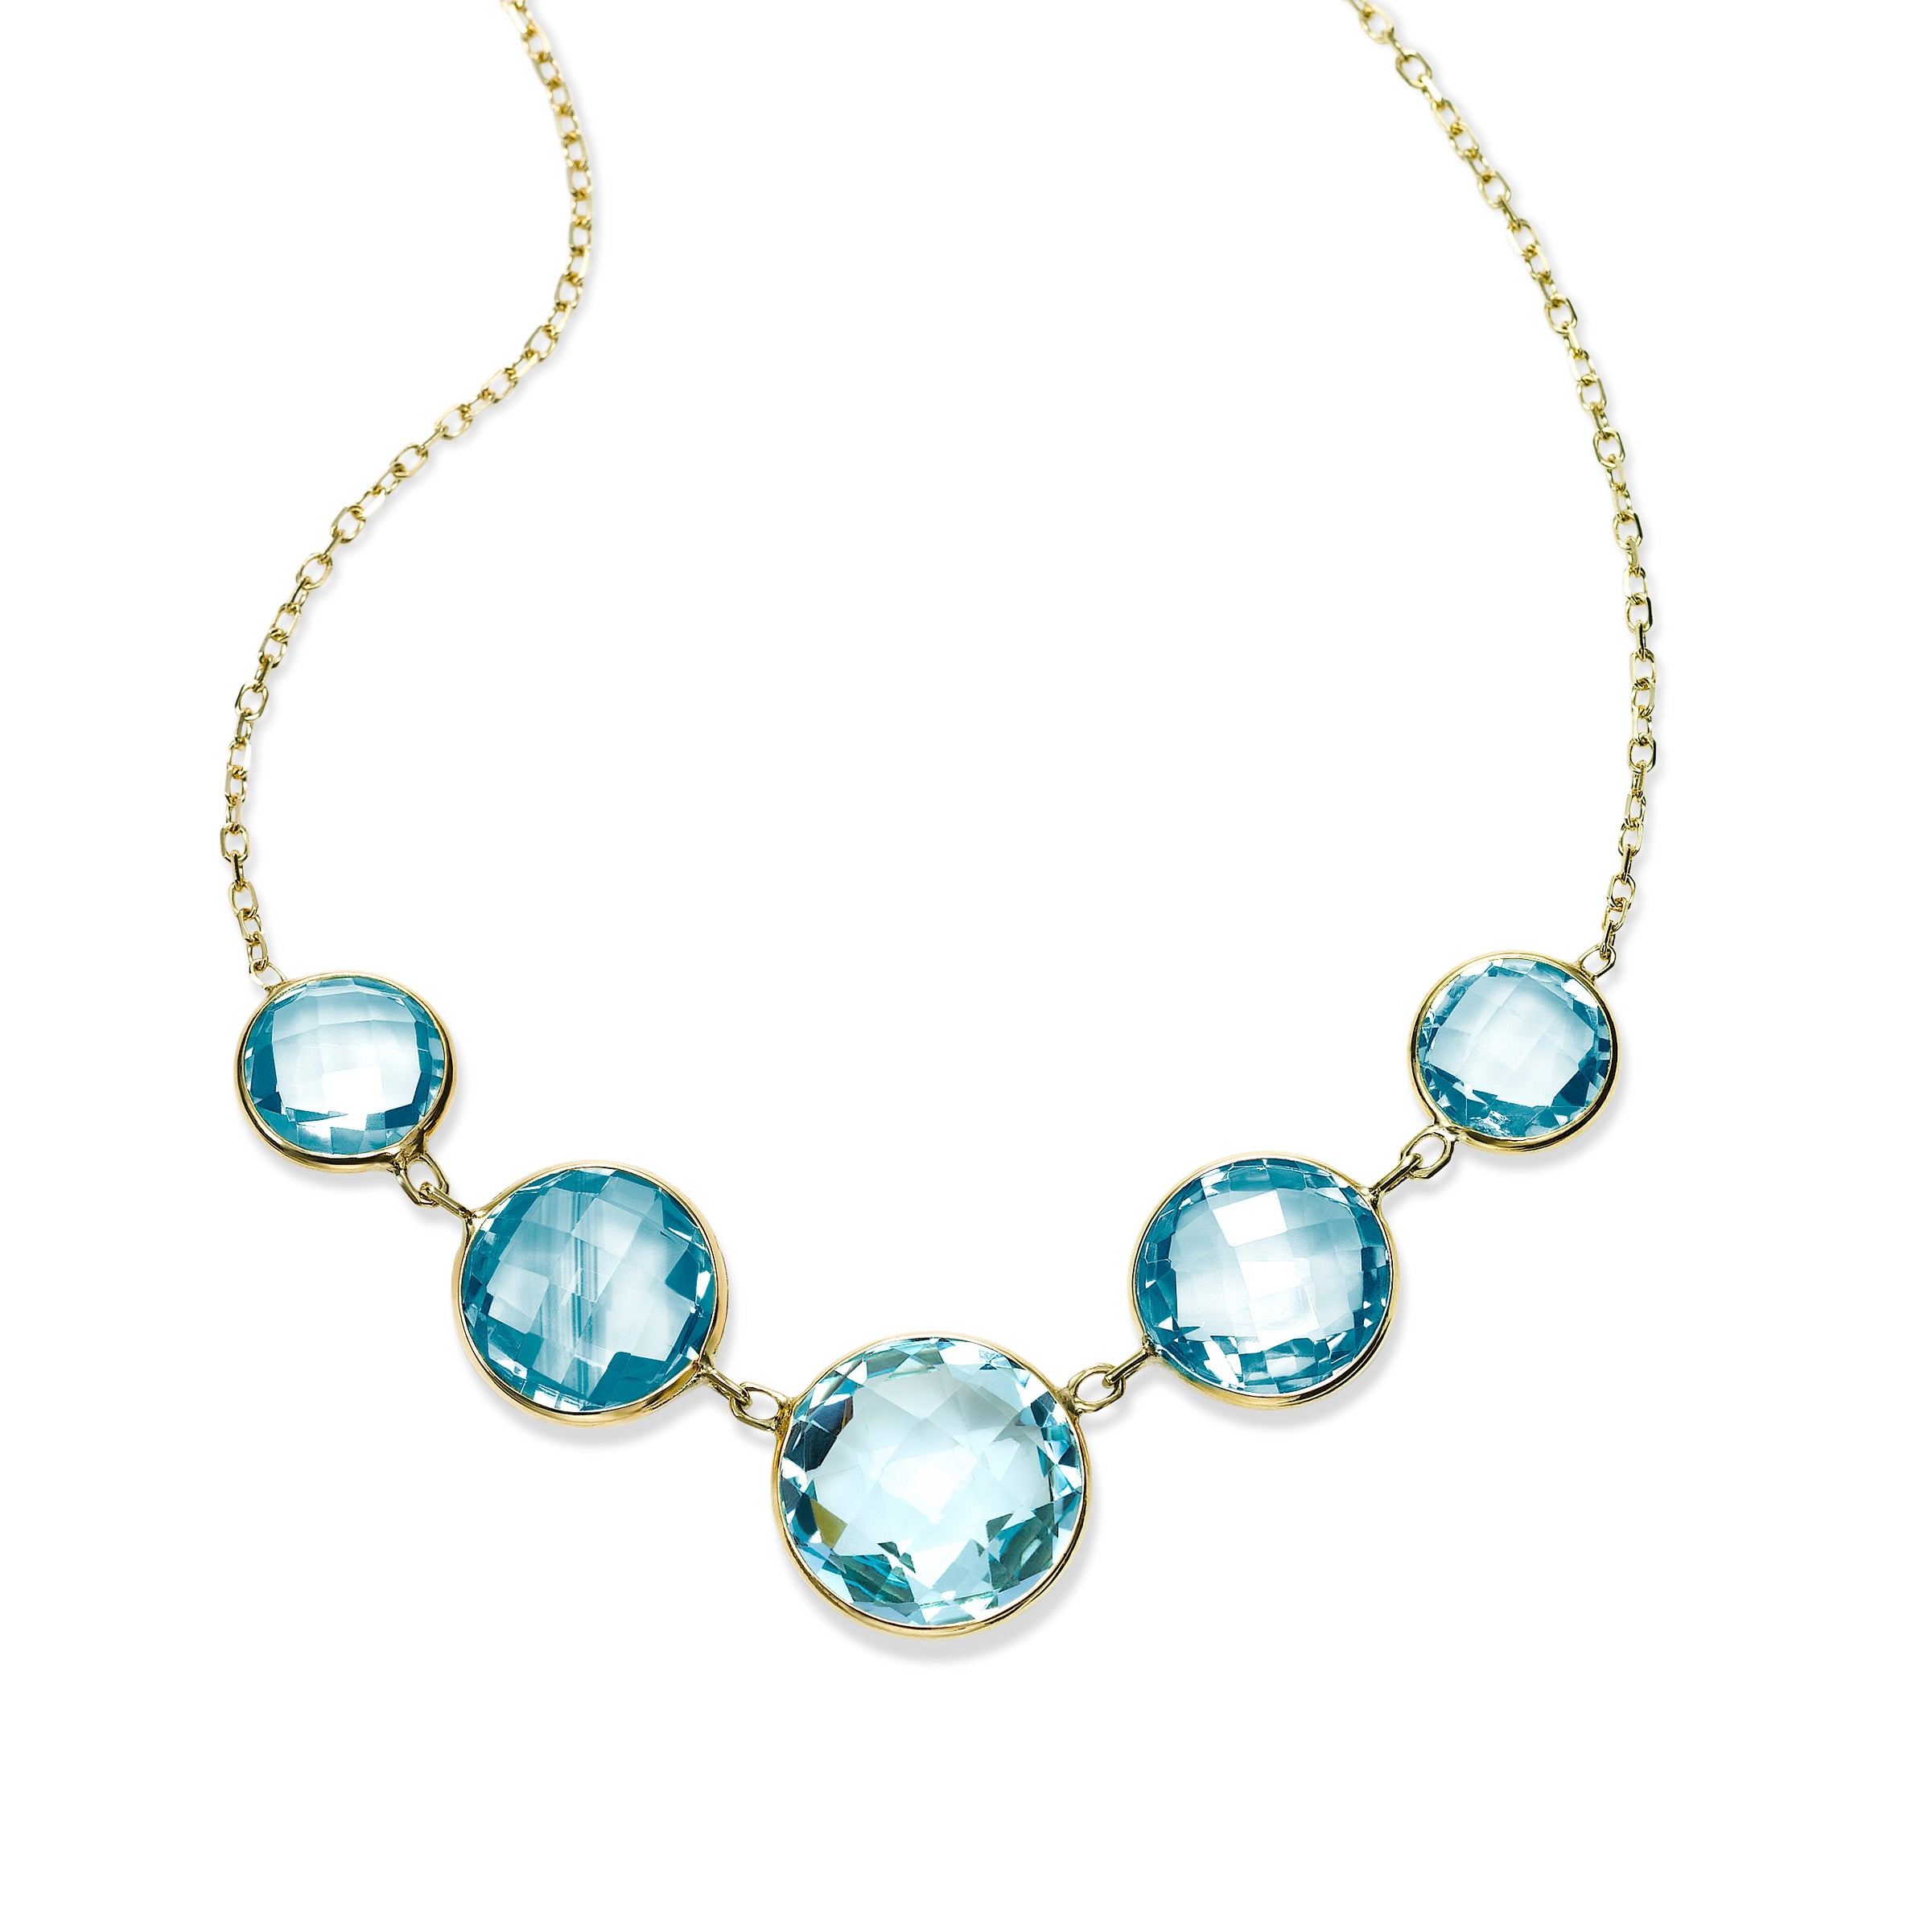 Bezel Set Graduated Blue Topaz Necklace, 14K Yellow Gold